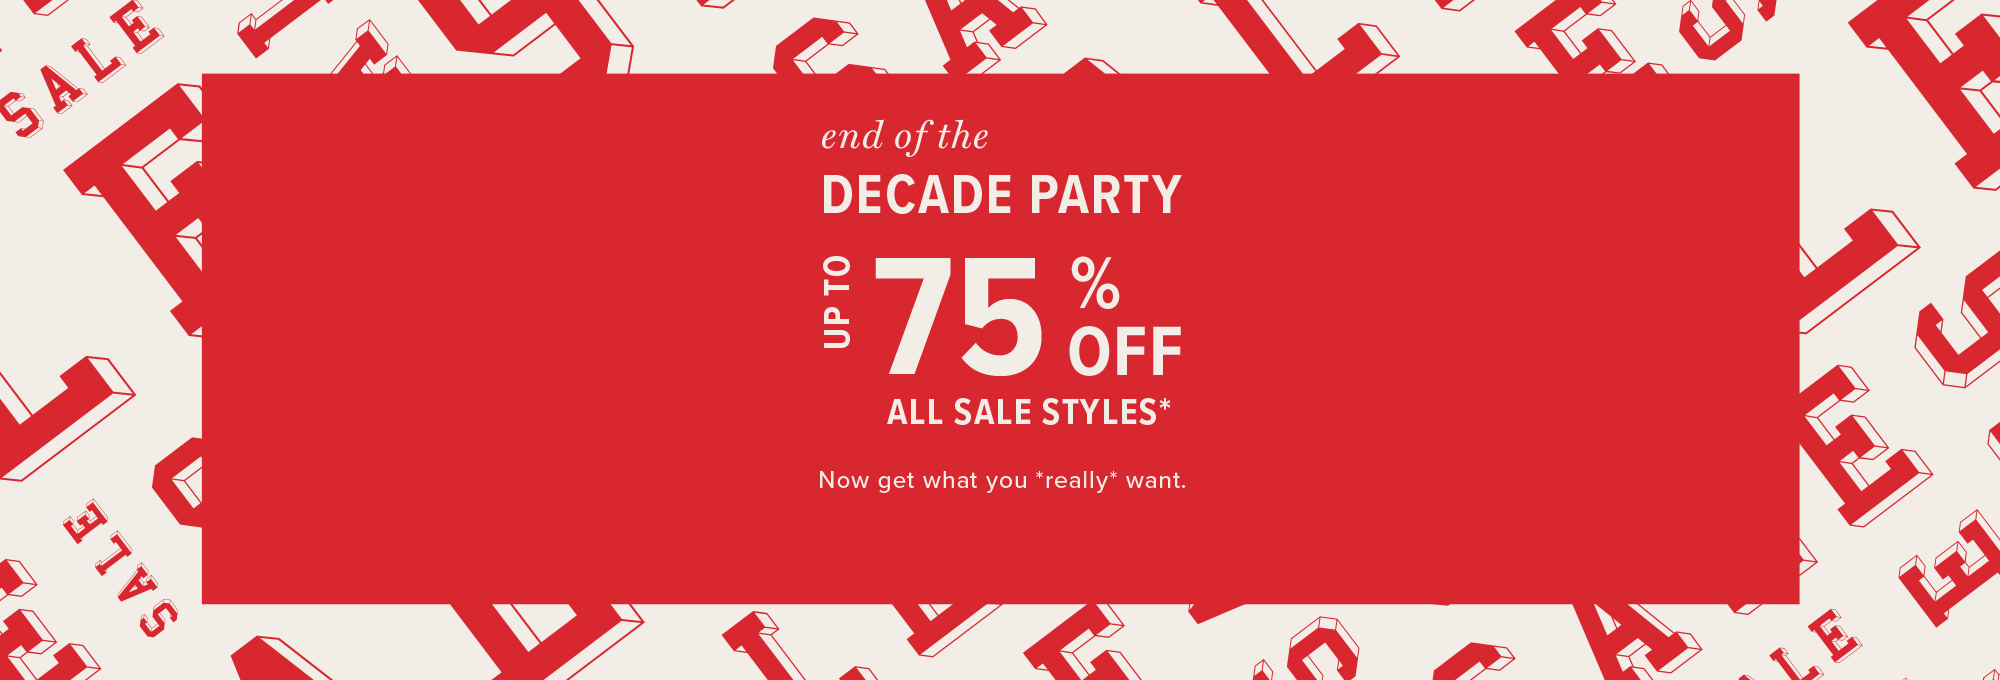 end of the decade party: up to 75% off all sale styles* now get what you *really* want.